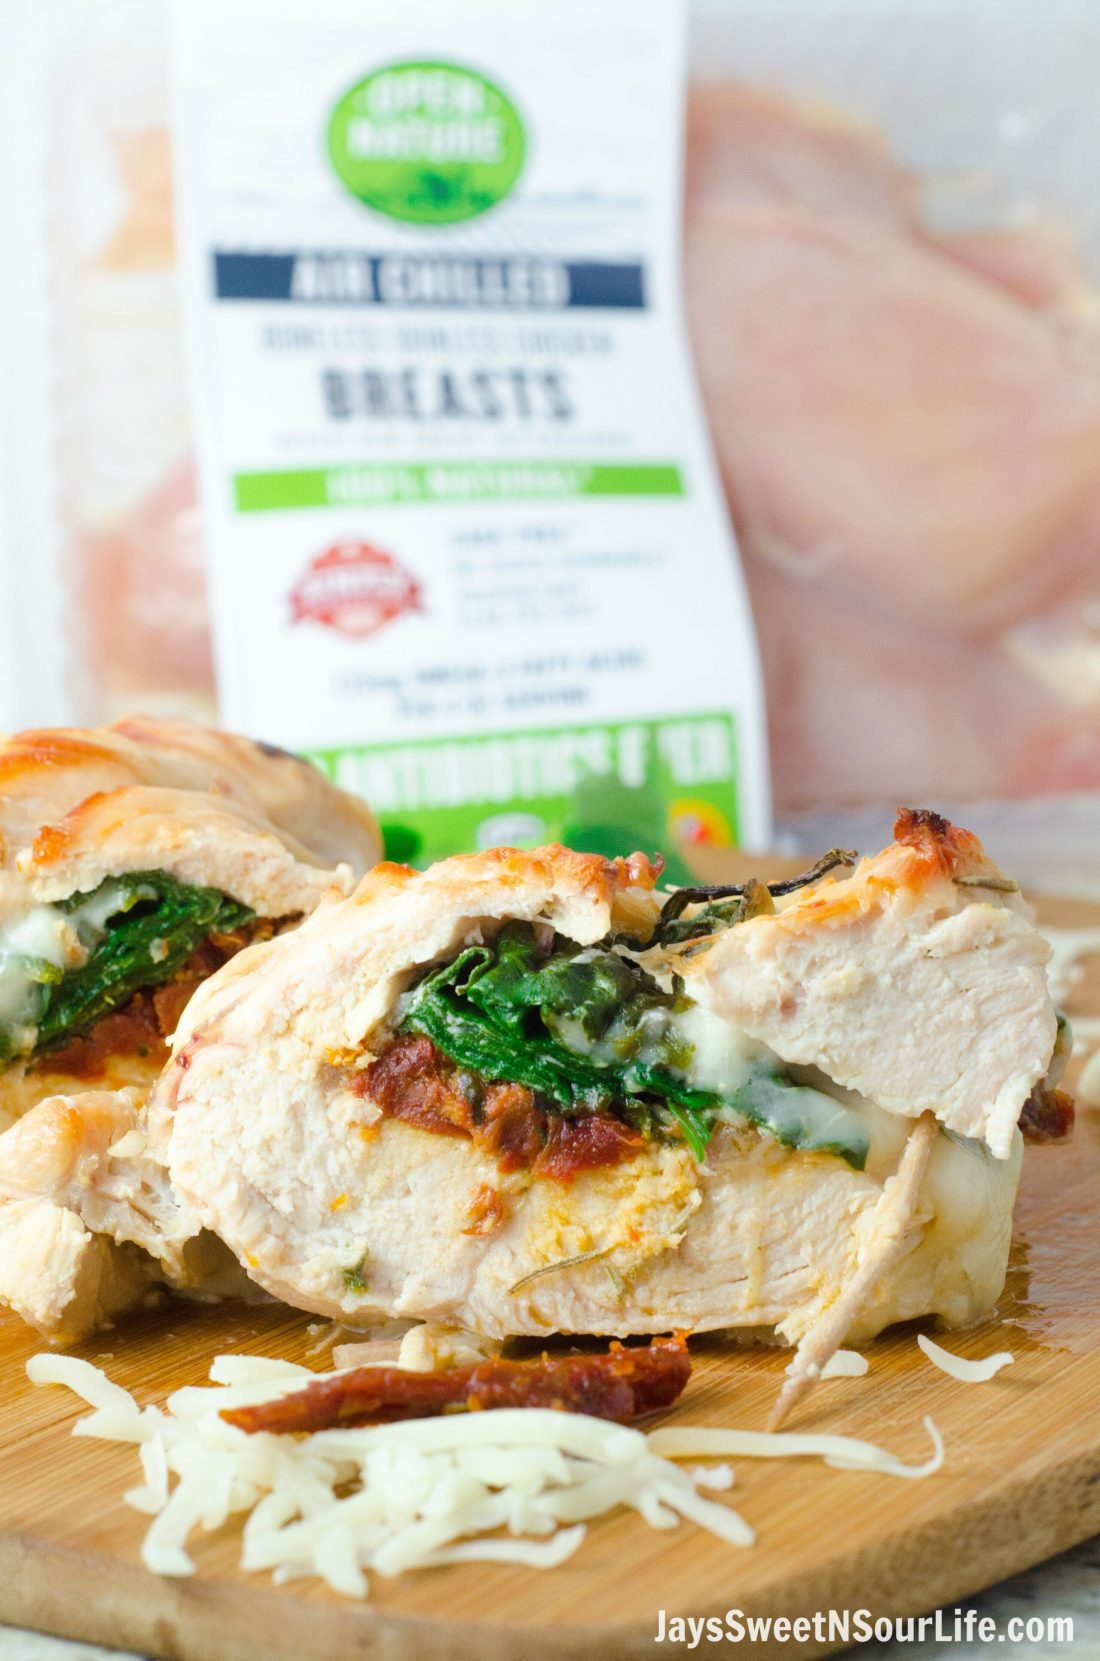 Sundried Tomato, Spinach and Cheese Stuffed Chicken Side View of Ingredients. Made with Open Nature® Air Chilled Chicken, available exclusively in Safeway.